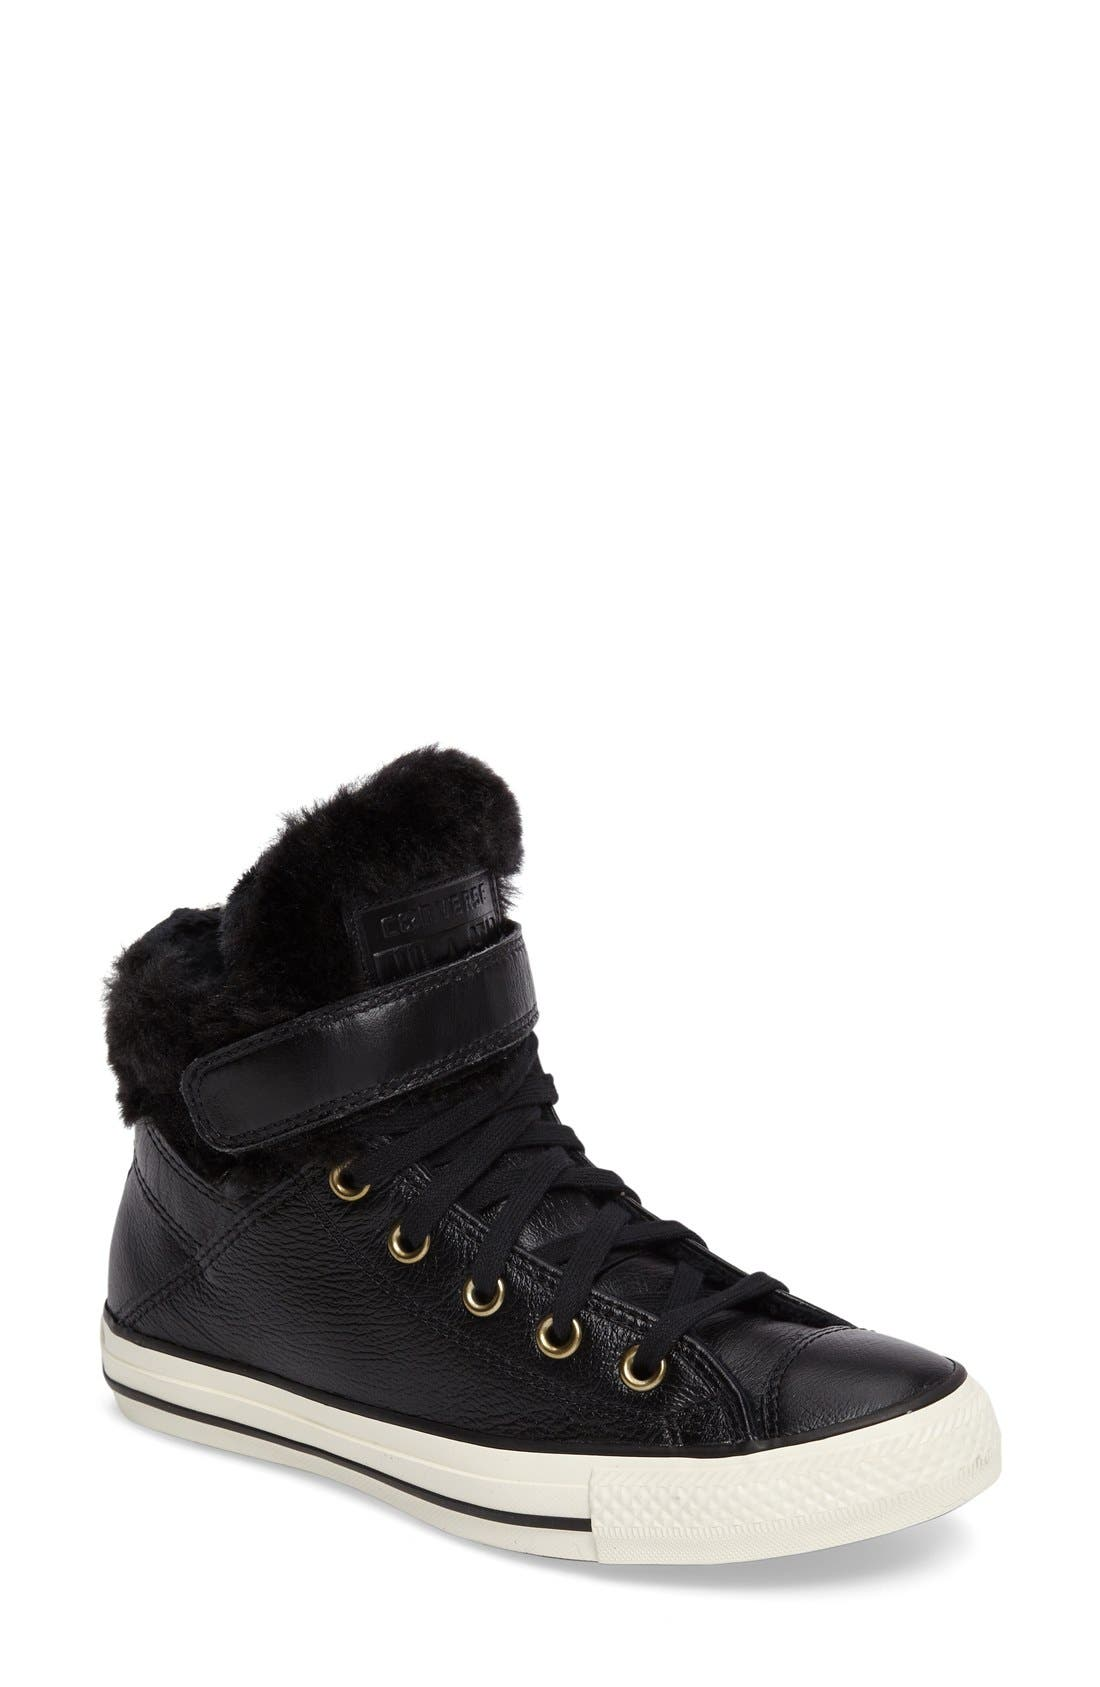 Alternate Image 1 Selected - Converse Chuck Taylor® All Star® Faux Fur High Top Sneaker (Women)